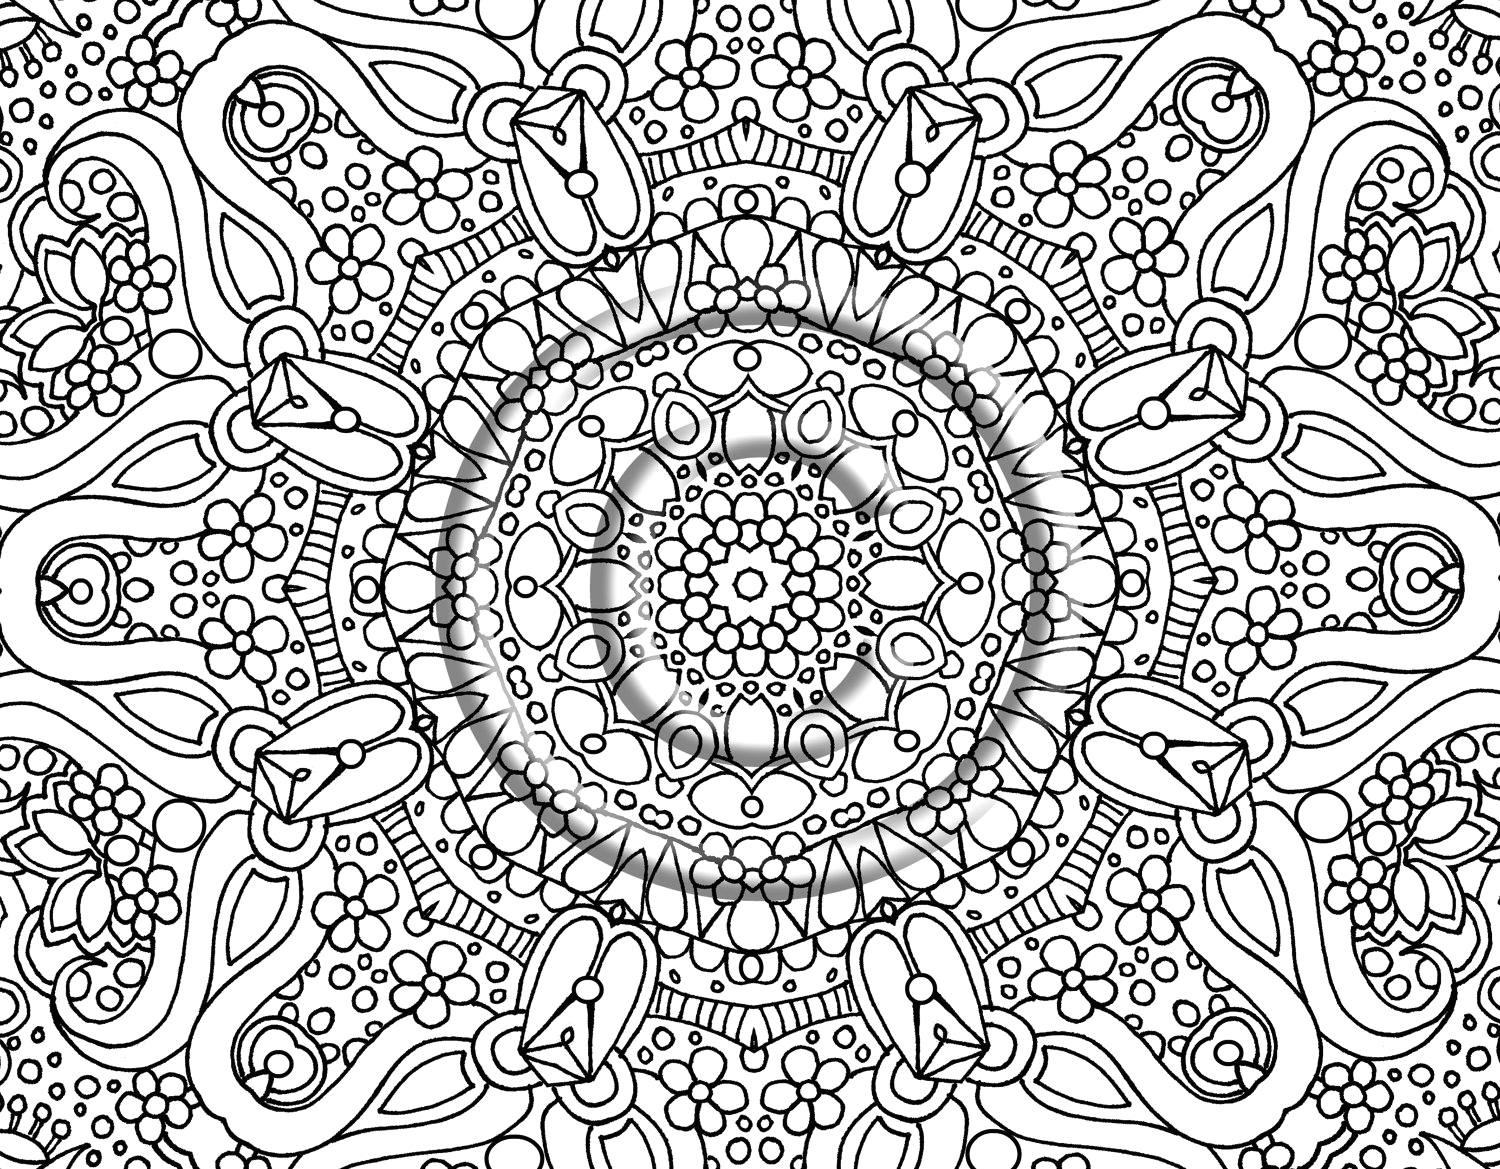 Free Printable Hard Coloring Pages for Adults Free Printable Abstract Coloring Pages for Adults